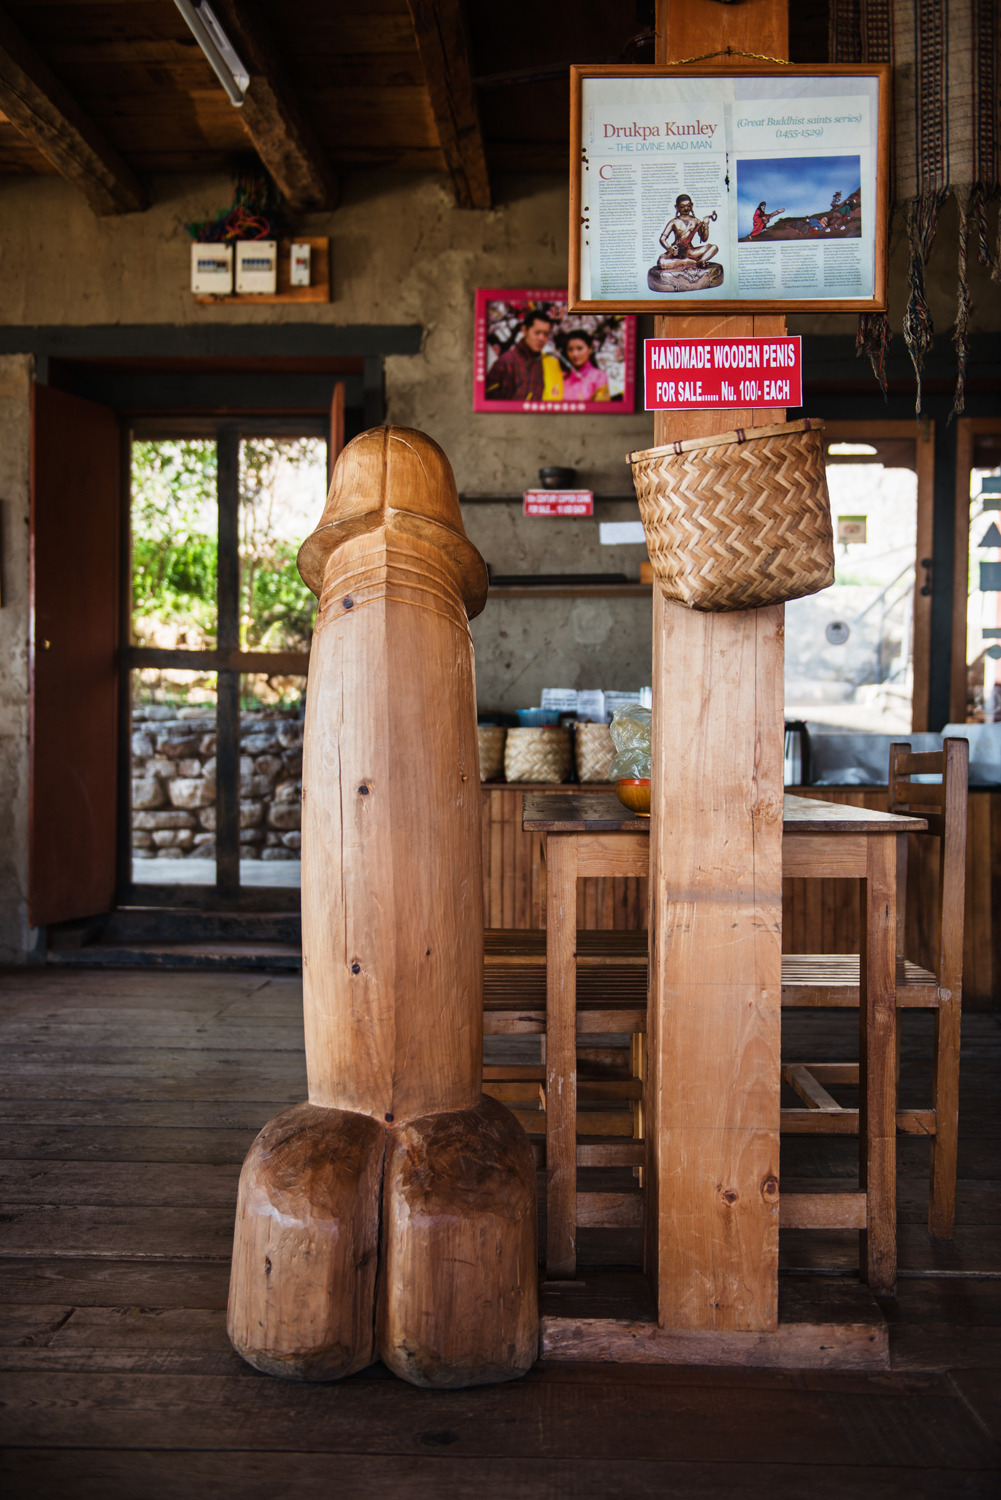 A wooden Phallus standing tall in a local restaurant.